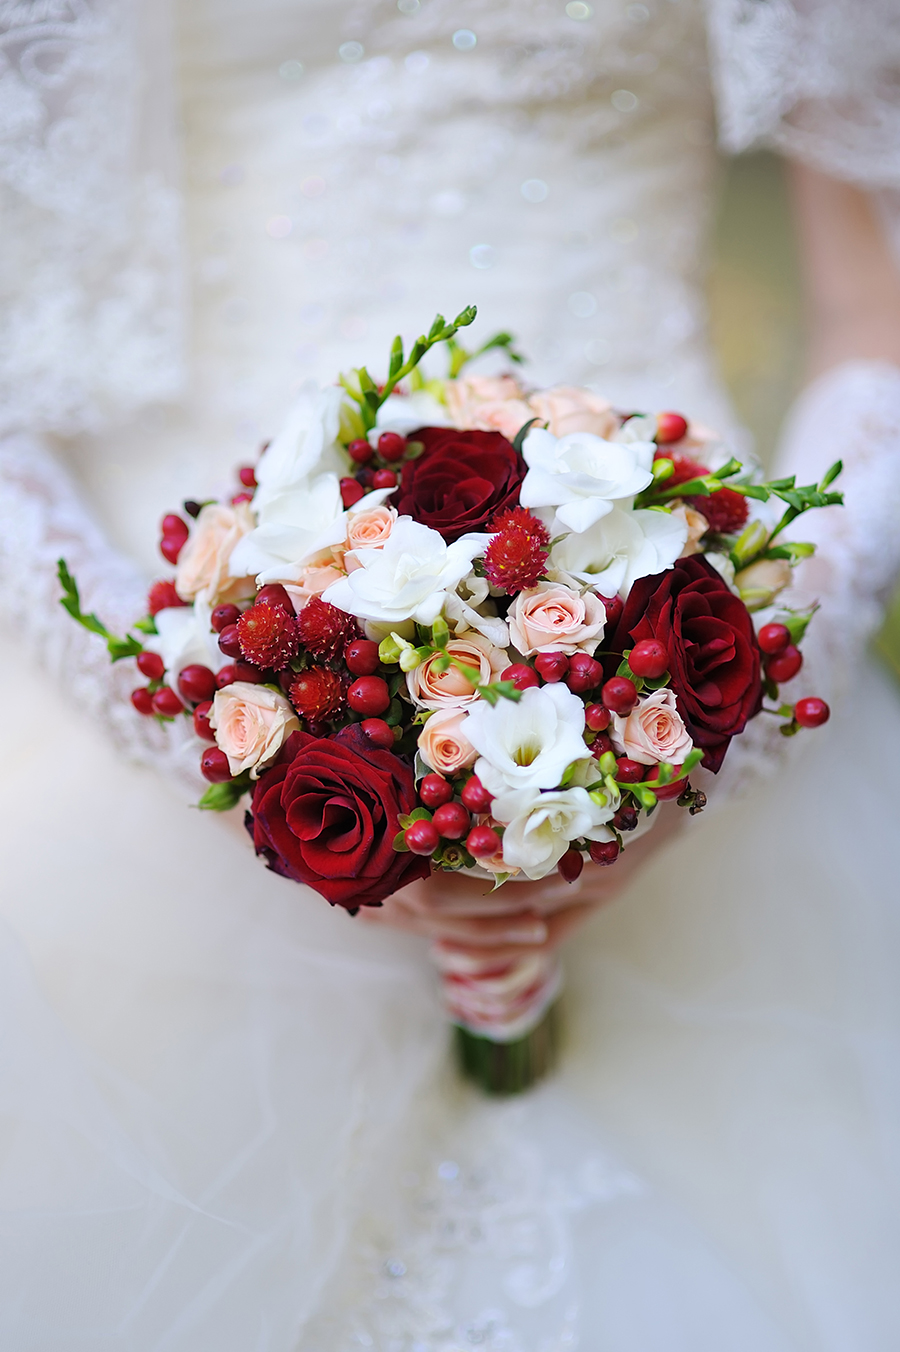 Winter Wedding Bouquet with beautiful red berries and roses